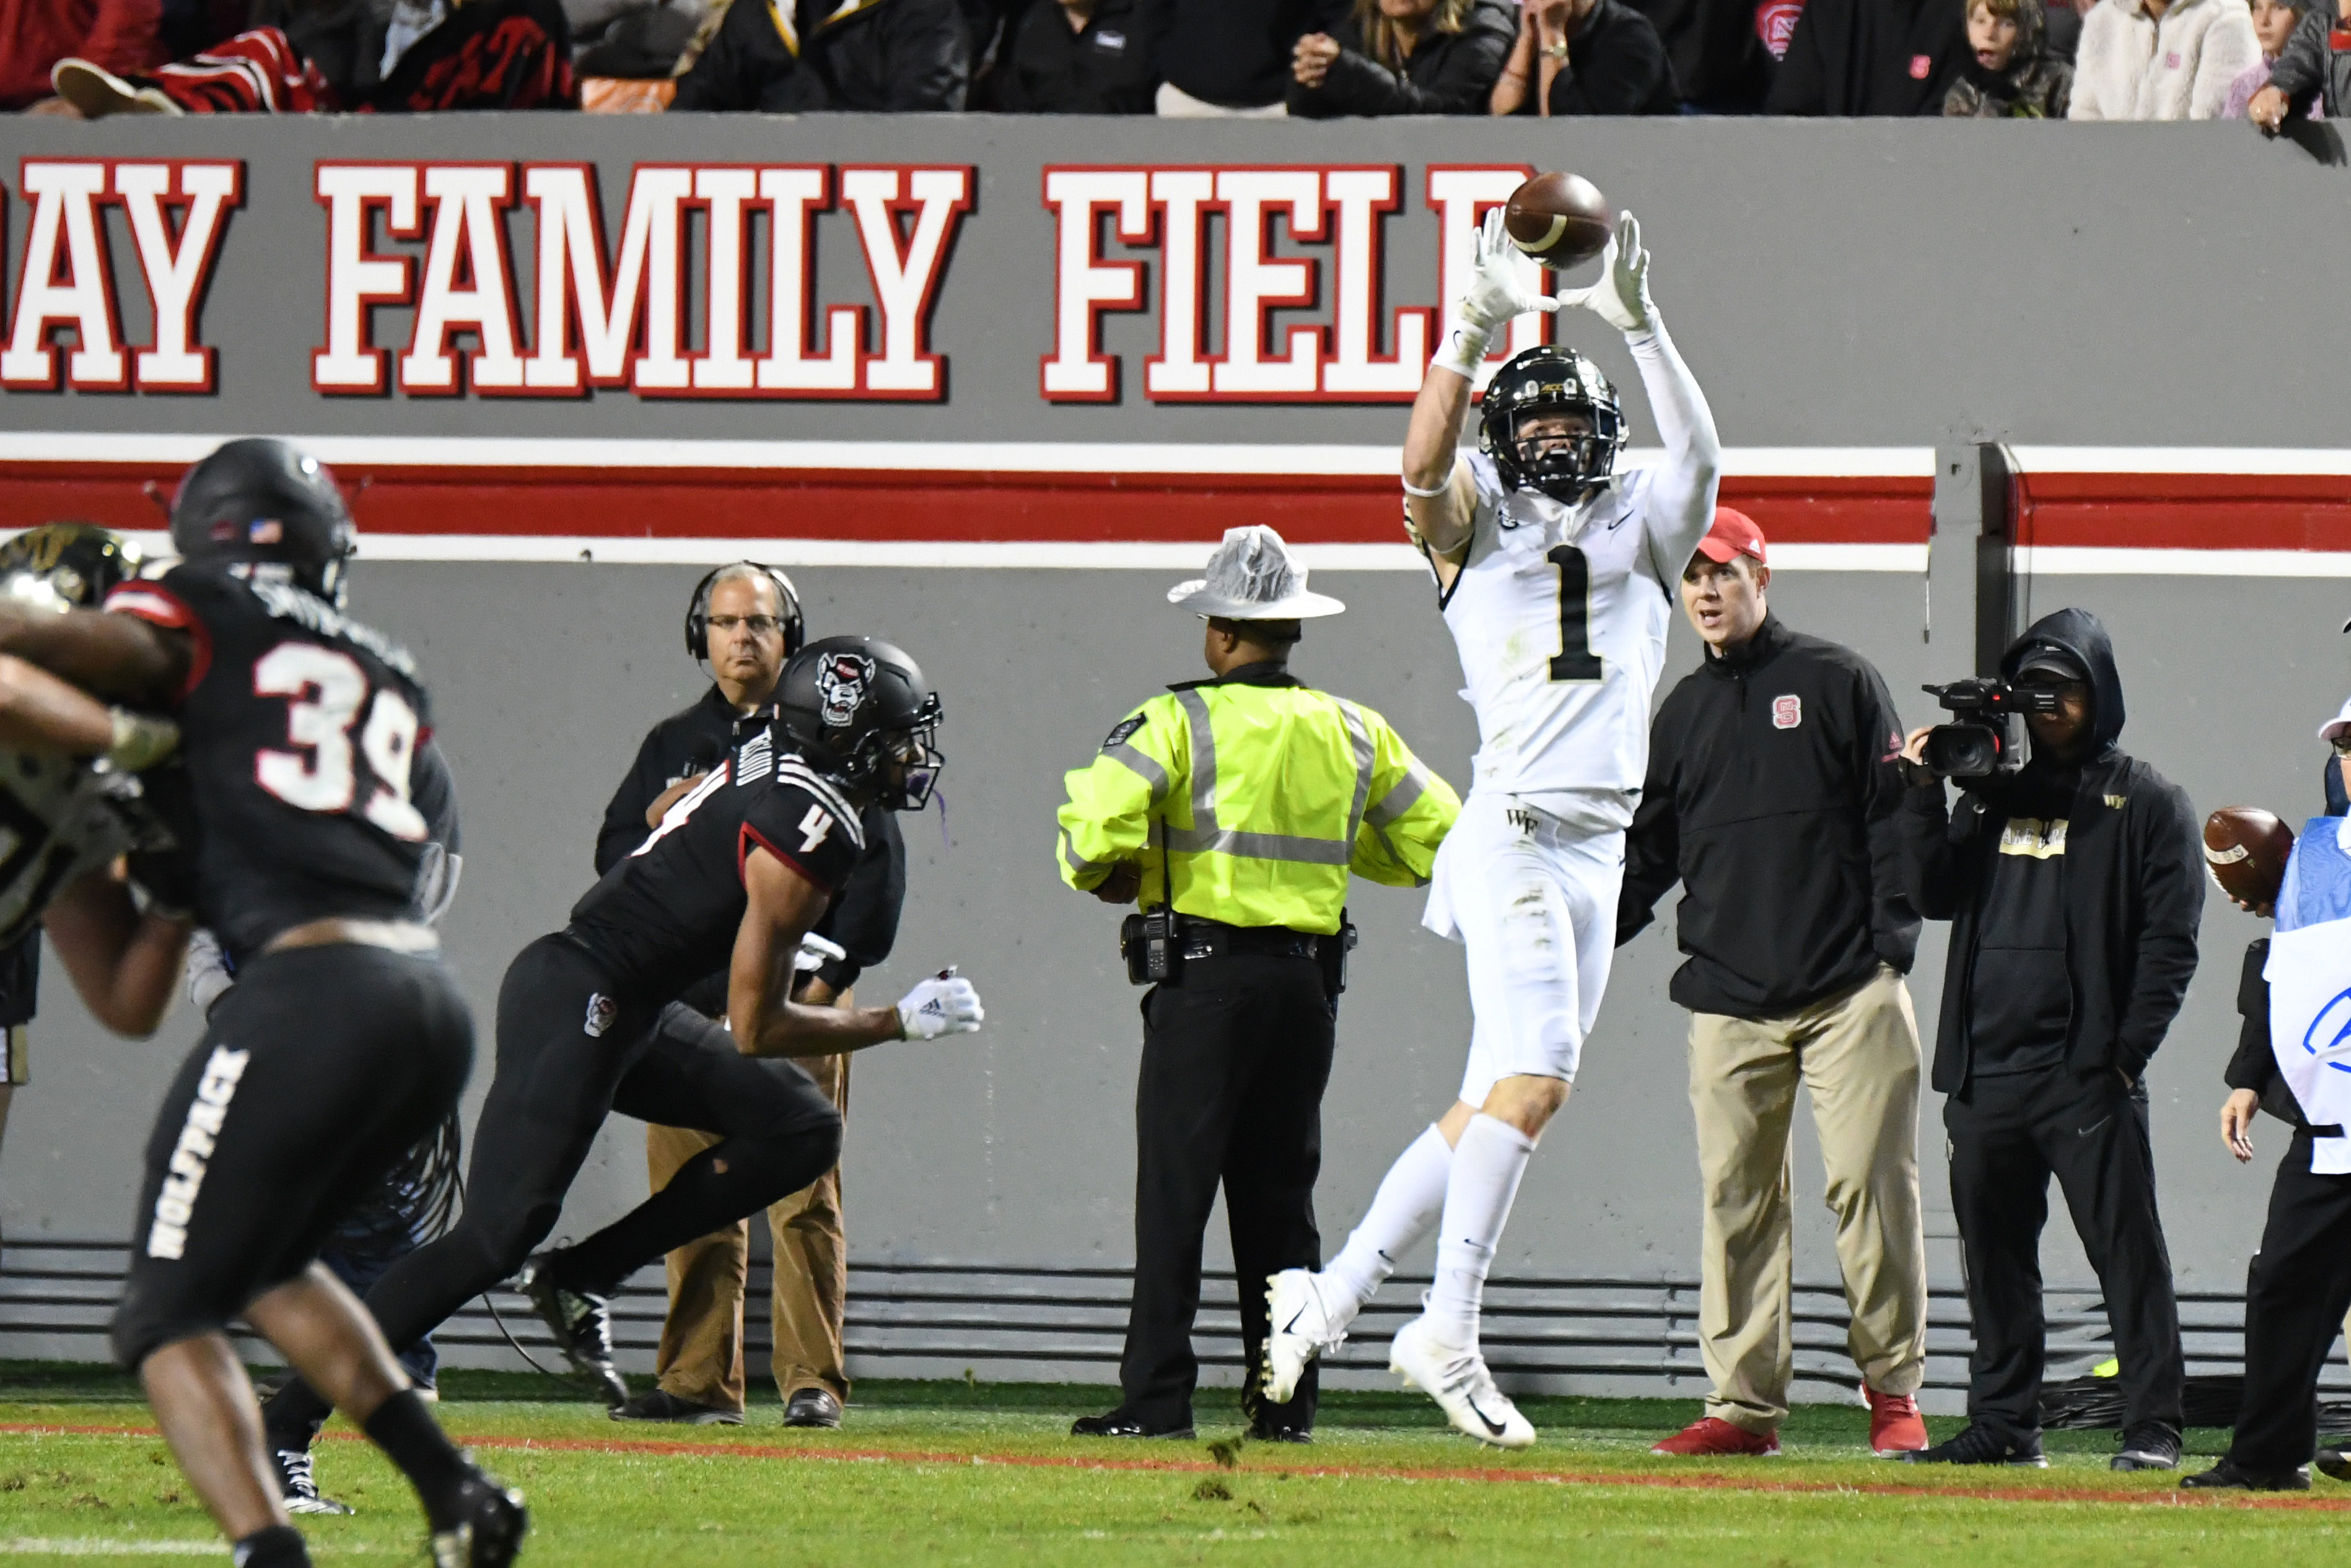 COLLEGE FOOTBALL: NOV 08 Wake Forest at NC State